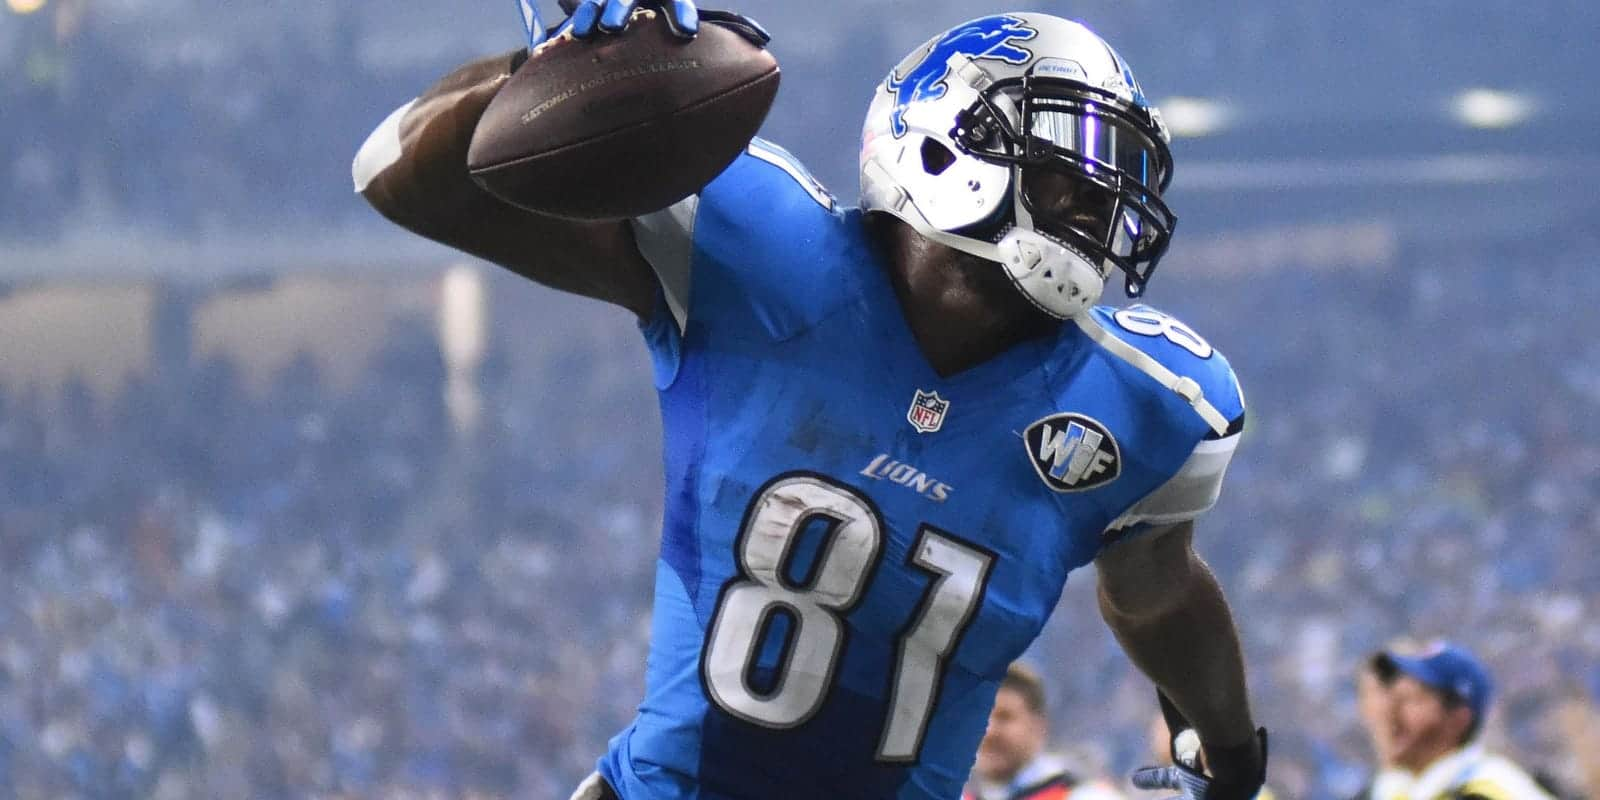 Top 10 most athletic NFL players of the 21st century